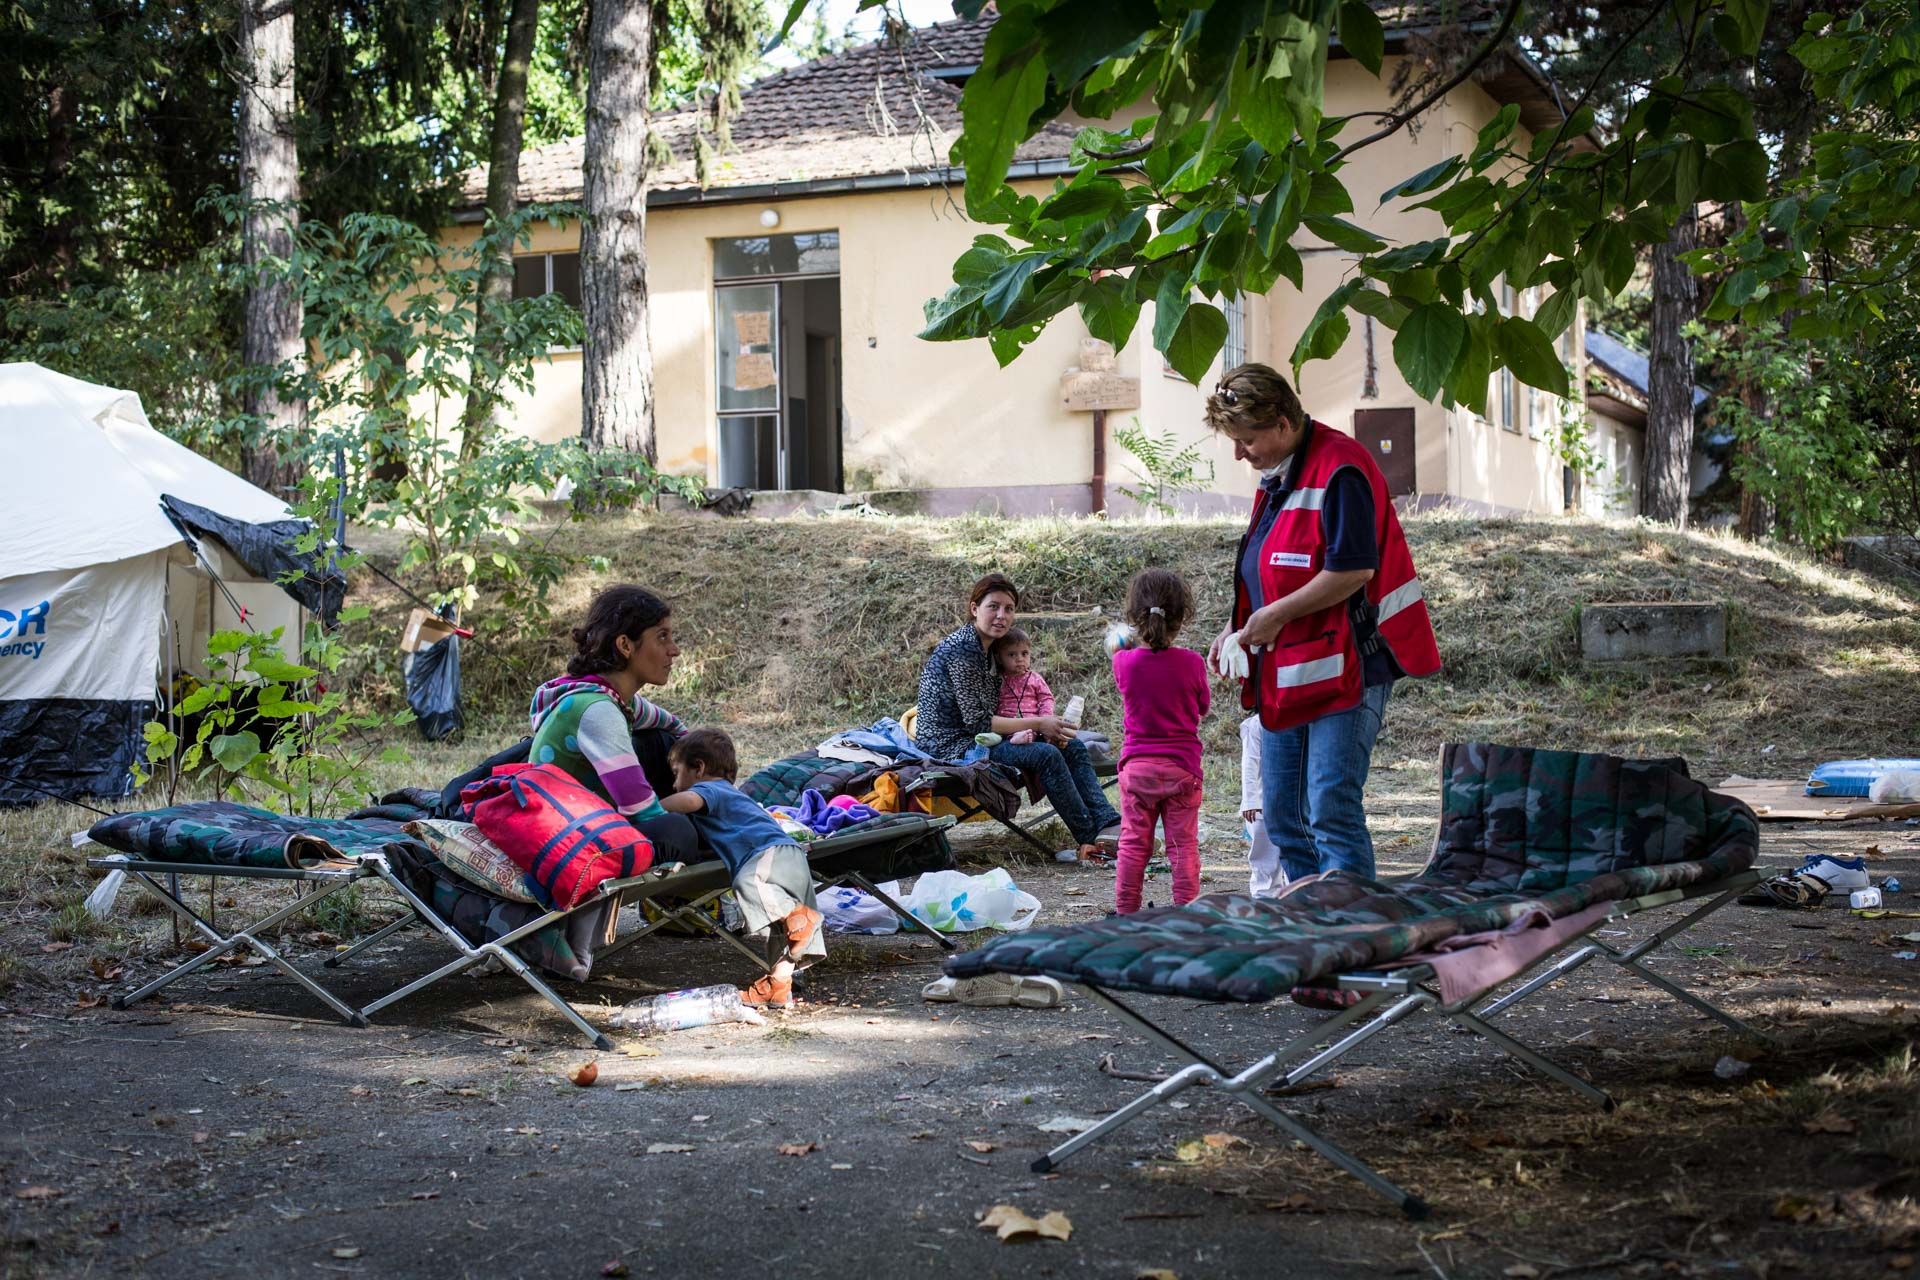 The Croatian red cross set up a camp in a nearby former army base to accomodate hundreds of people waiting to continue their journey to Europe.